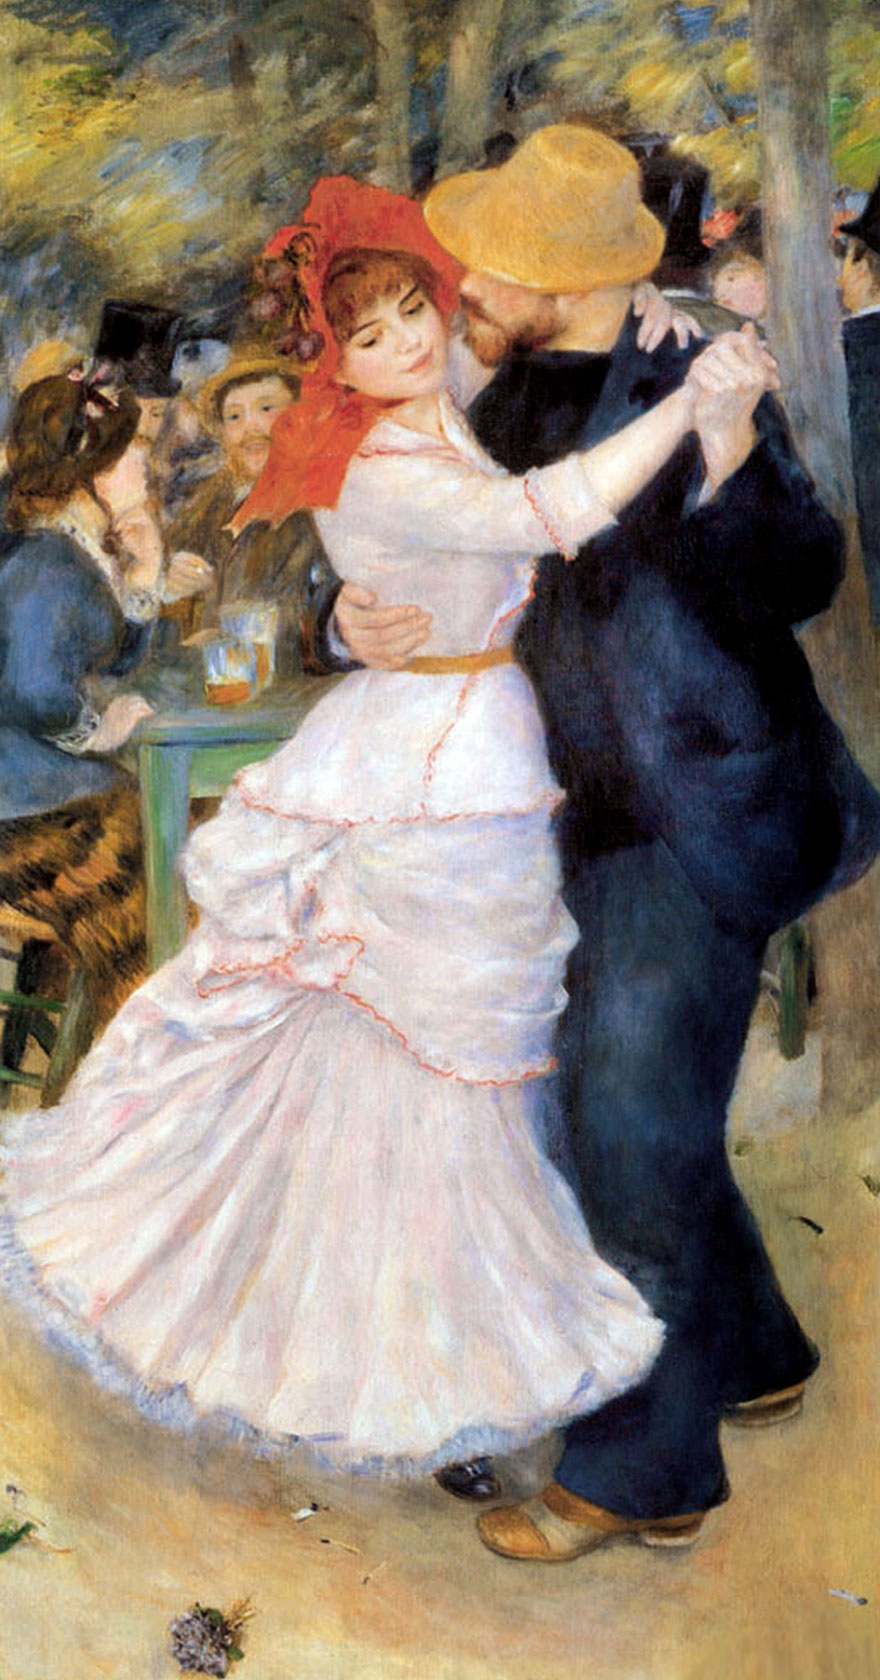 a biography of pierre auguste renoir a french artist